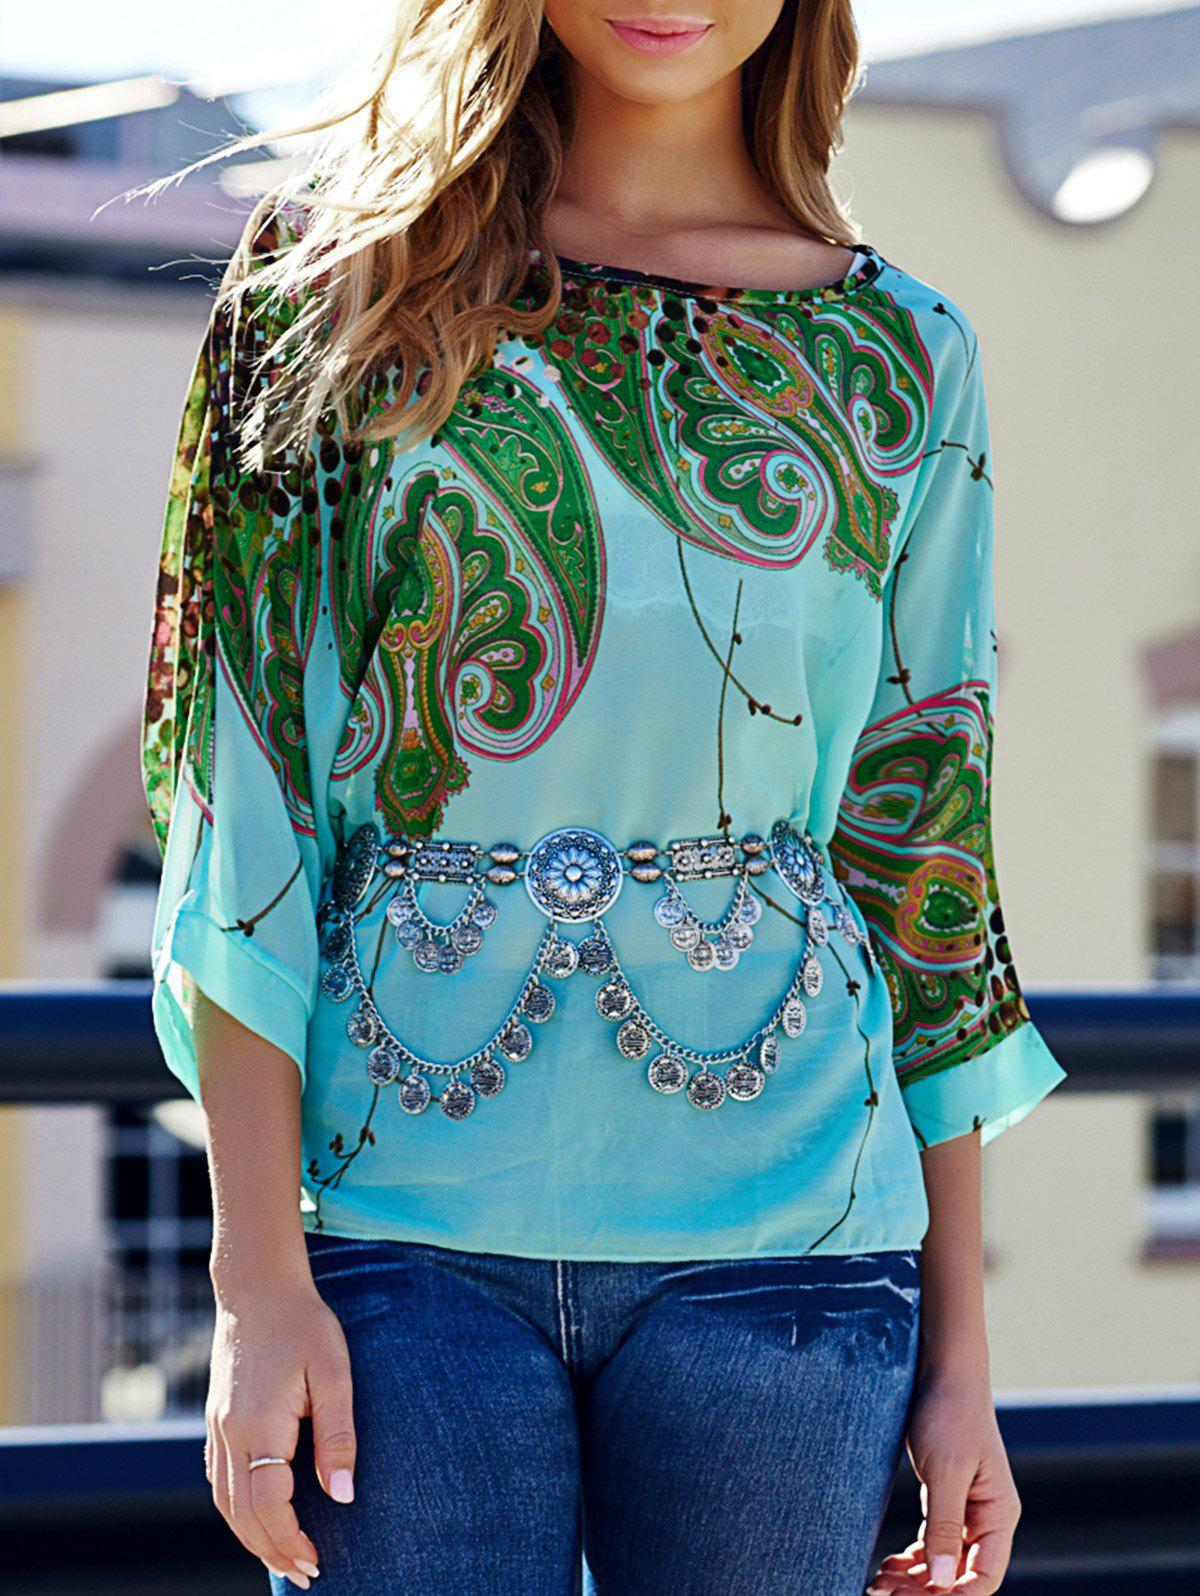 Stylish Scoop Neck Batwing Sleeve Printed Loose-Fitting Chiffon Blouse For WomenWOMEN<br><br>Size: L; Color: COLORMIX; Style: Fashion; Material: Polyester; Fabric Type: Chiffon; Shirt Length: Regular; Sleeve Length: Three Quarter; Collar: Scoop Neck; Pattern Type: Print; Weight: 0.163kg; Package Contents: 1 x Blouse;